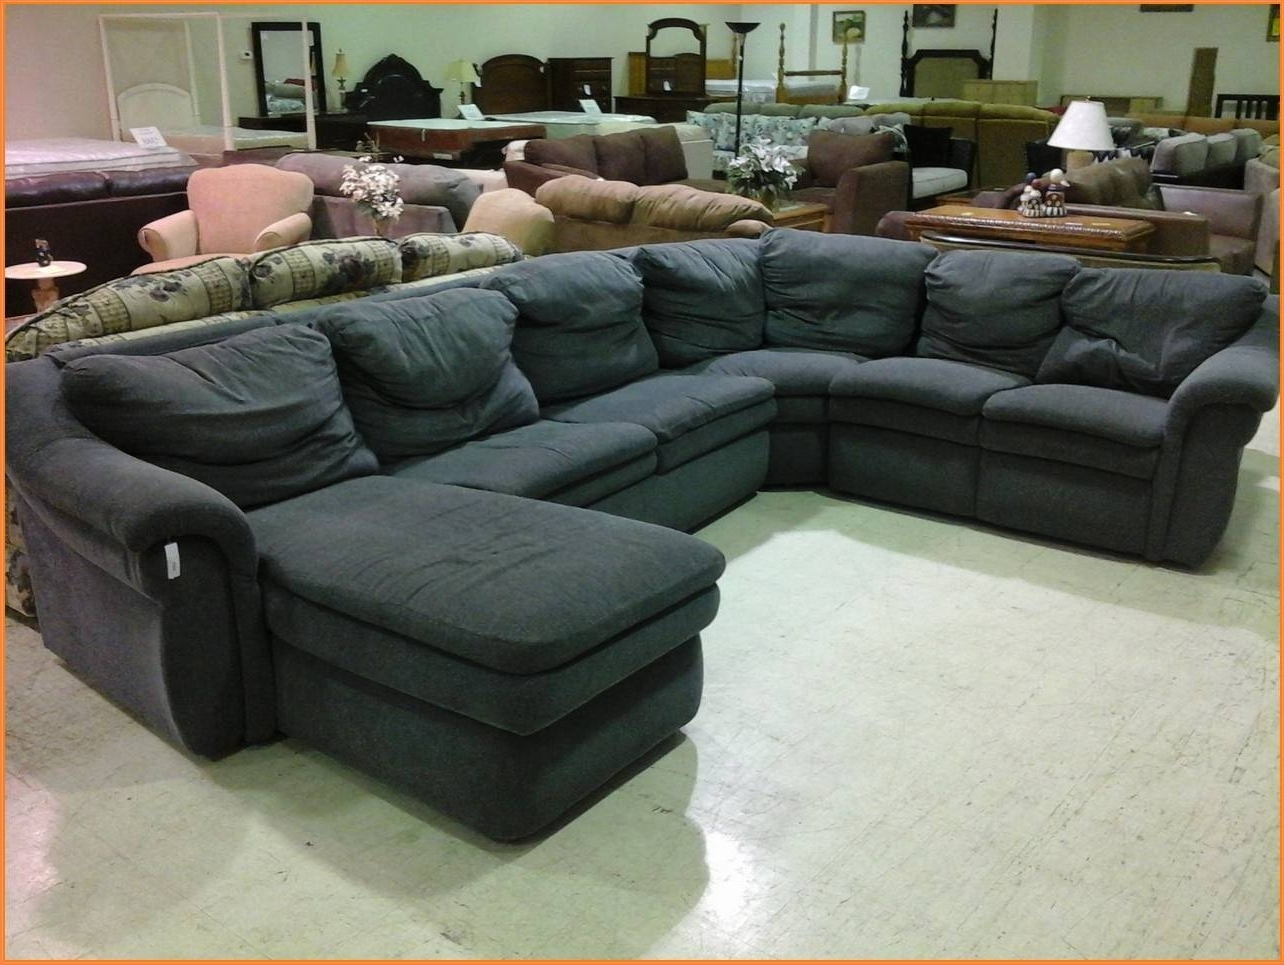 Most Recently Released Lazy Boy Sectional Sofas Intended For Charming Lazy Boy Sectional Sleeper Sofa 96 For Malibu Sectional (View 11 of 15)